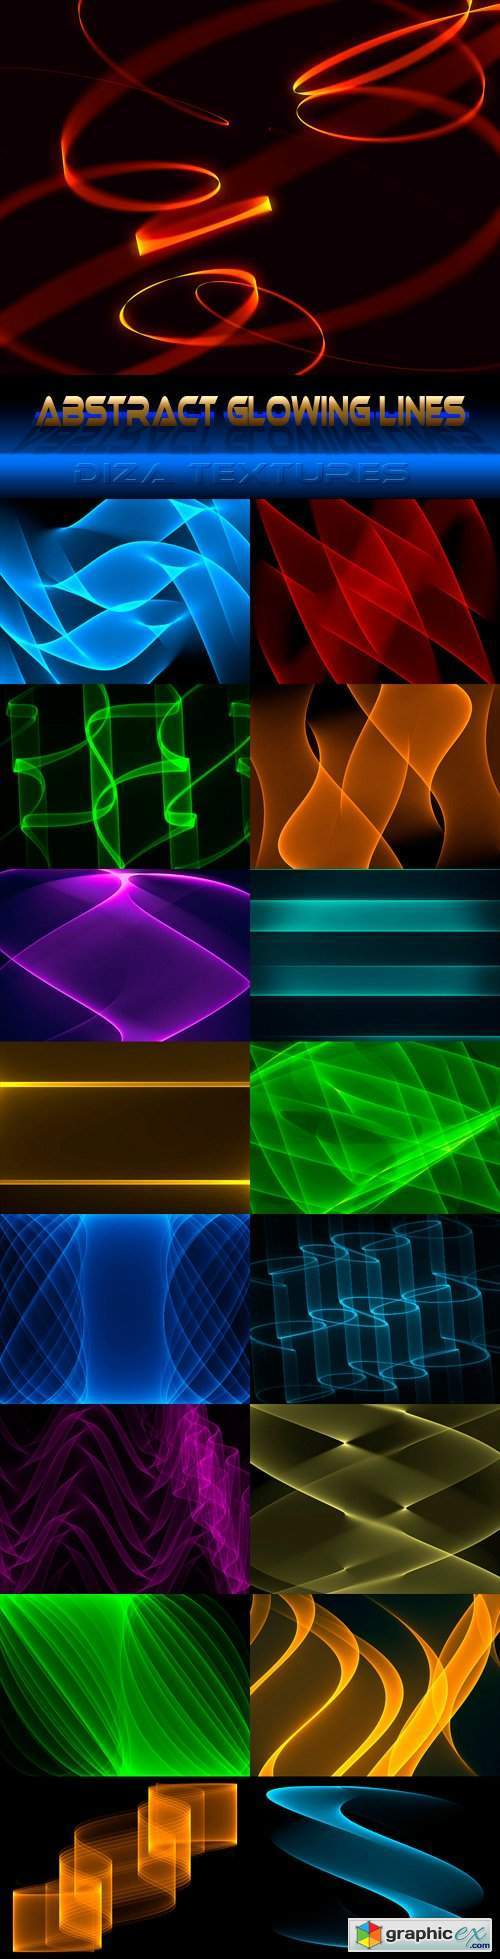 Abstract glowing lines textures